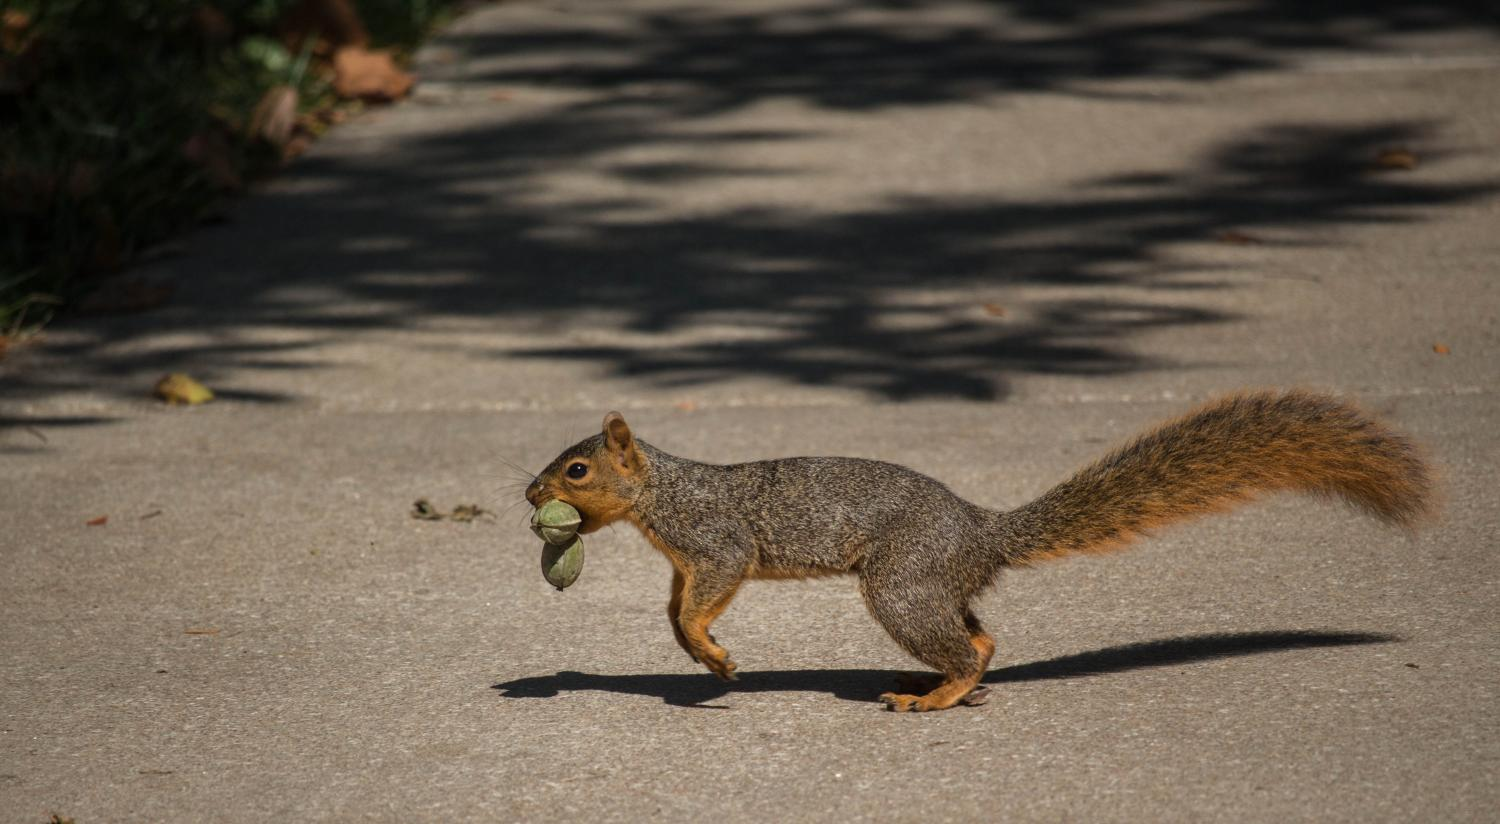 A squirrel scampers across campus with its treasures. Several squirrels populate campus and can always be seen when walking to class. They've been named the Baker Squirrels and even have their own Twitter account.